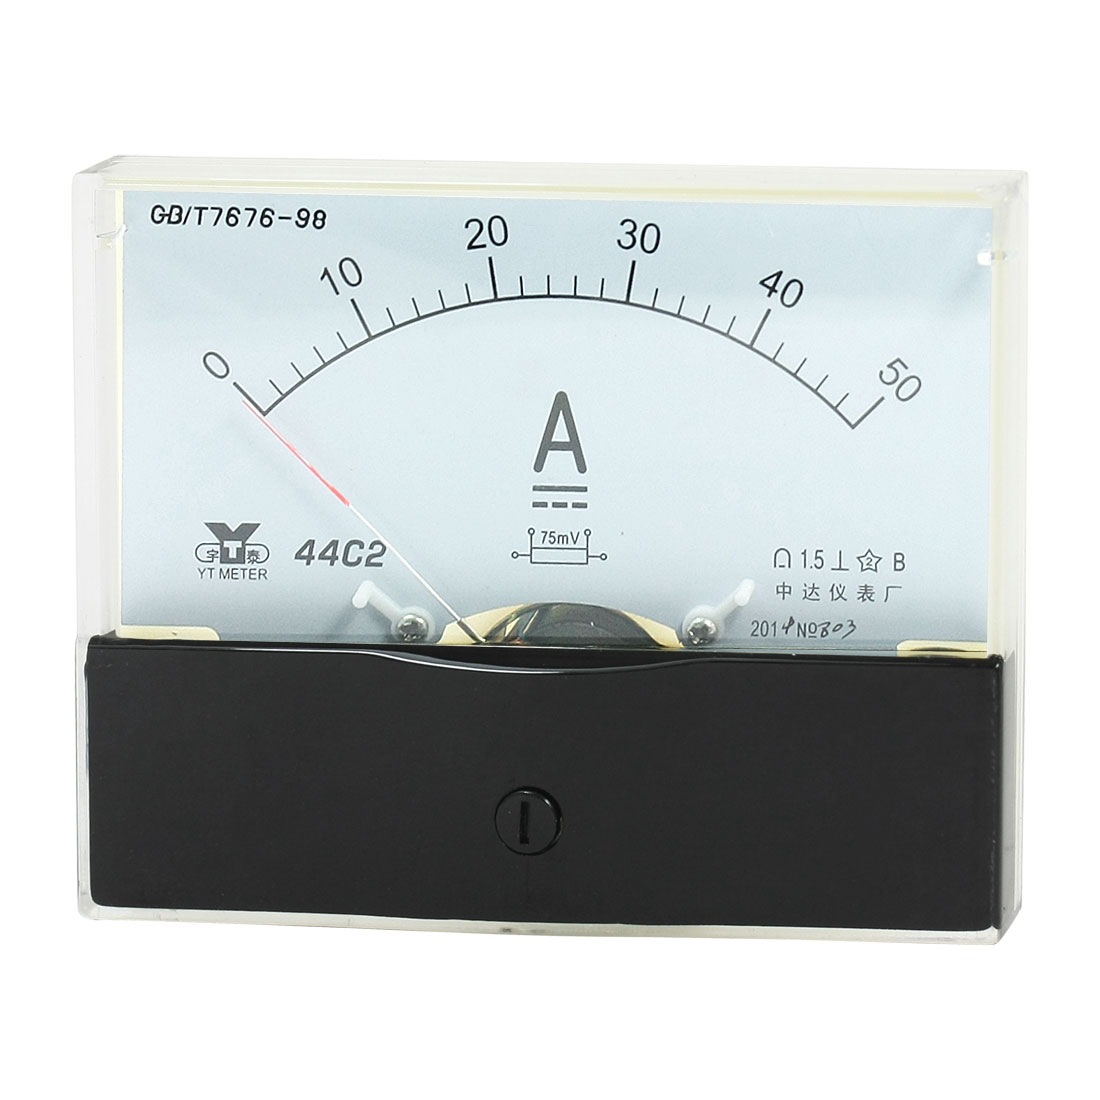 Rectangle Measurement Tool Analog Panel Ammeter Gauge DC 0 - 50A Measuring Range 44C2